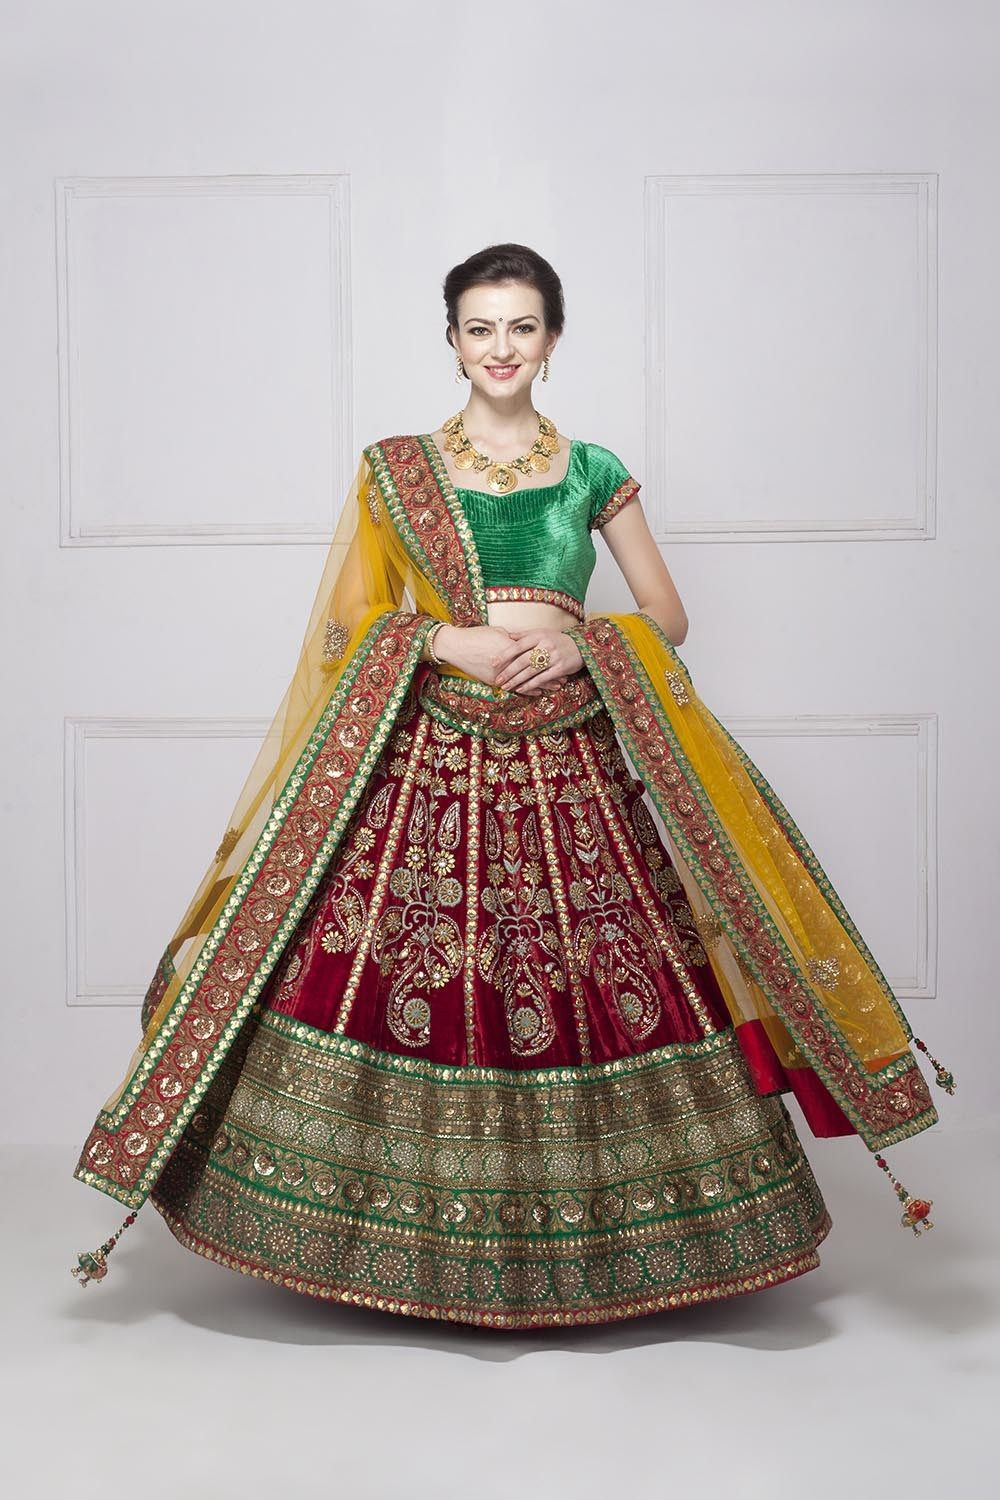 c4d73f3441 This gorgeous Frontier Raas red velvet wedding lehenga can be yours for  just under 18k rent. #Frugal2Fab